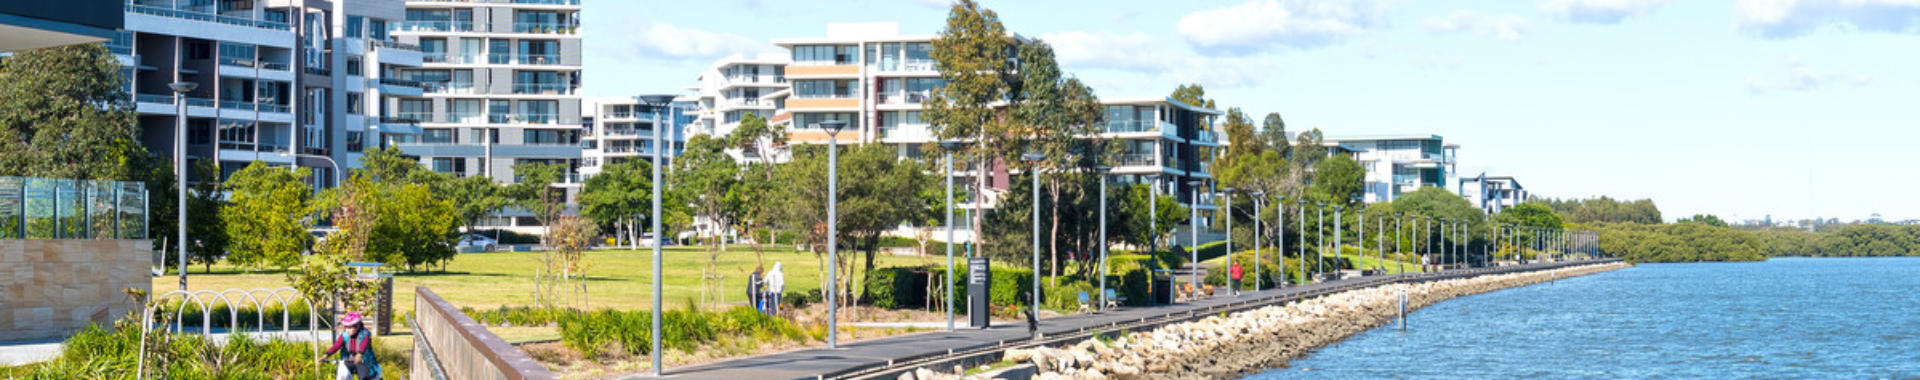 Rhodes Corporate Apartments - Waterfront